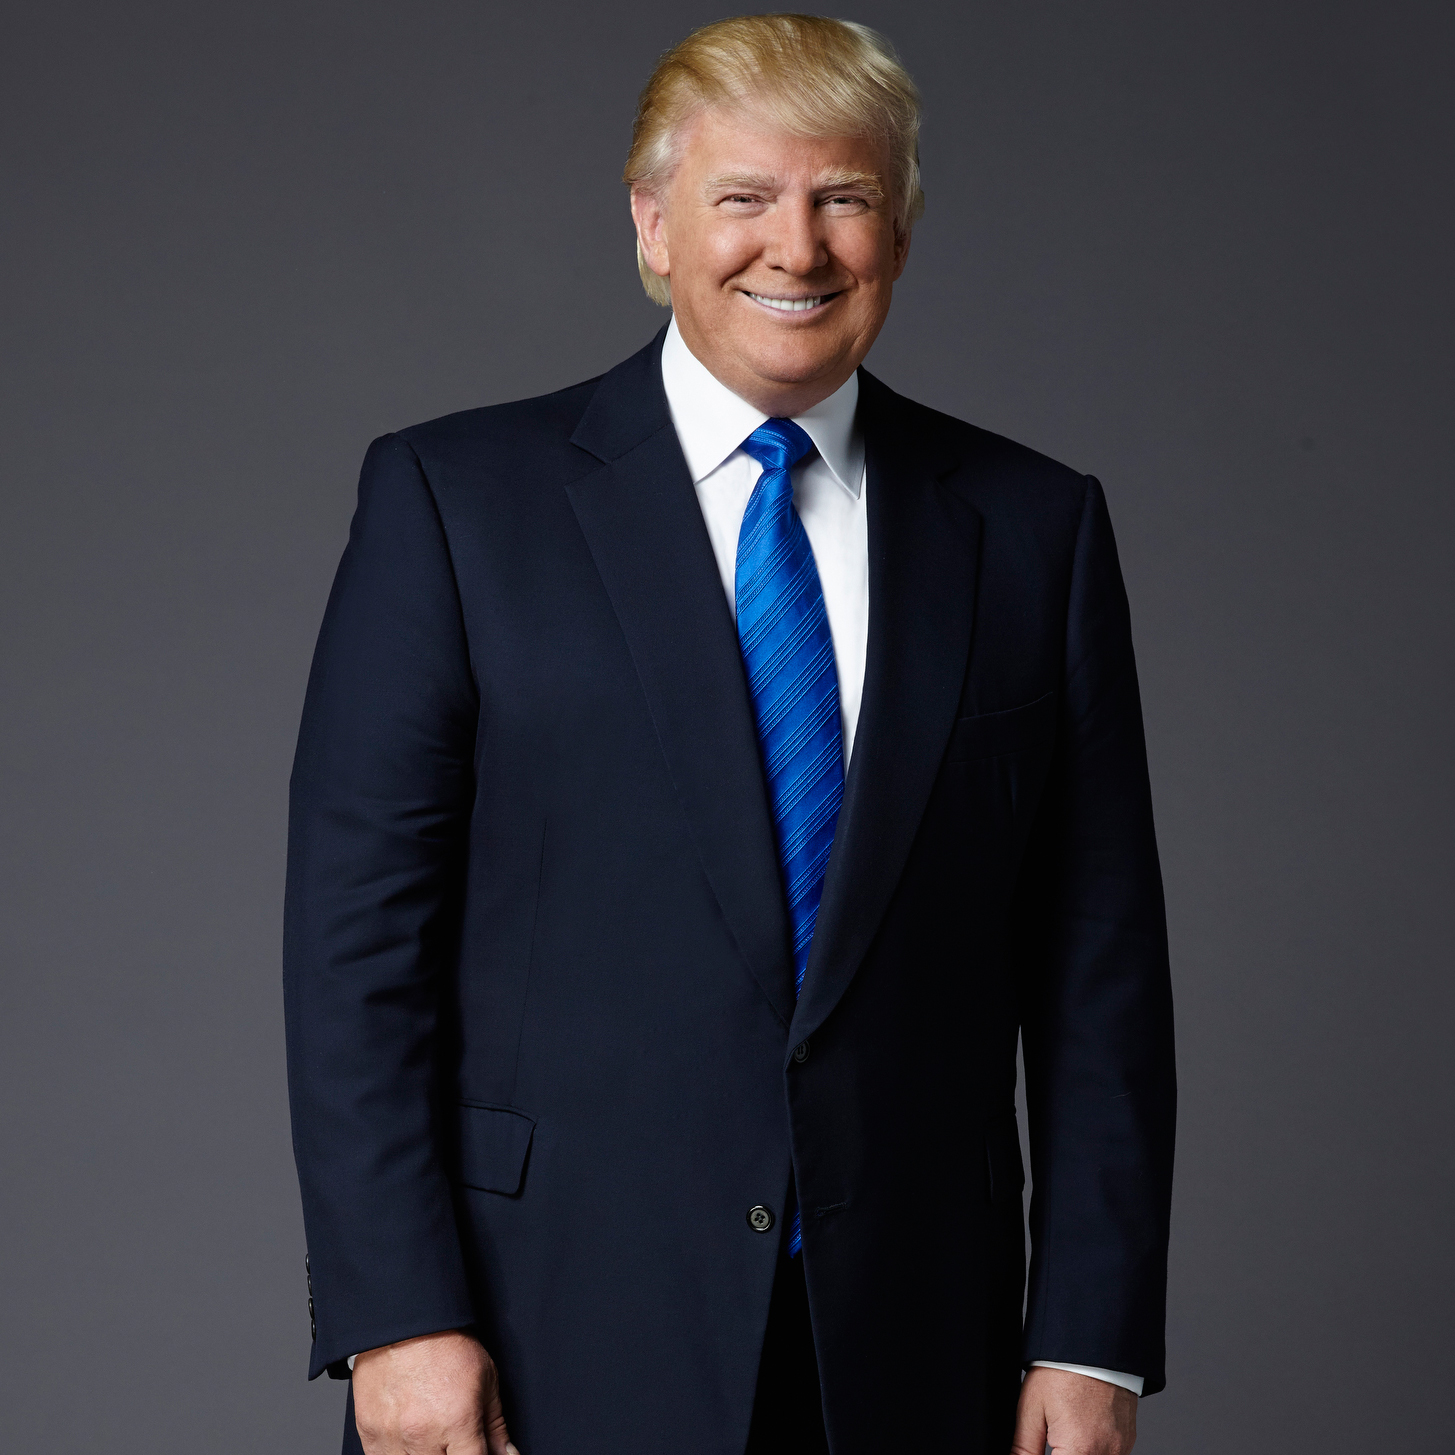 official photo and biography president trump